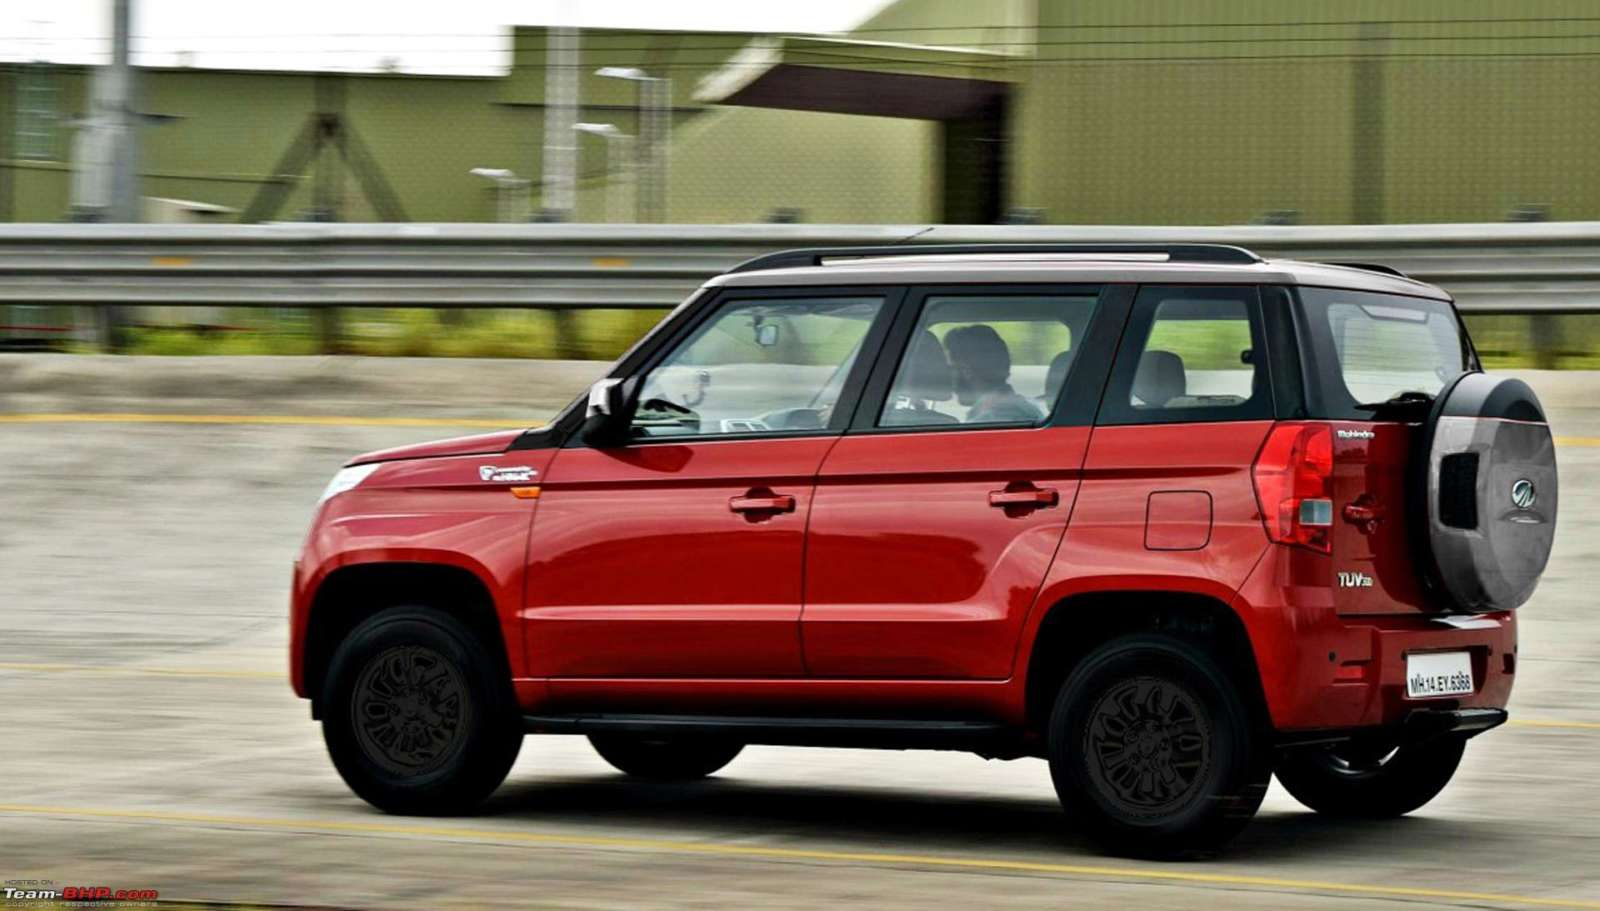 Paint Color 2017 Renders Mahindra Tuv300 Modifications That Make It Look